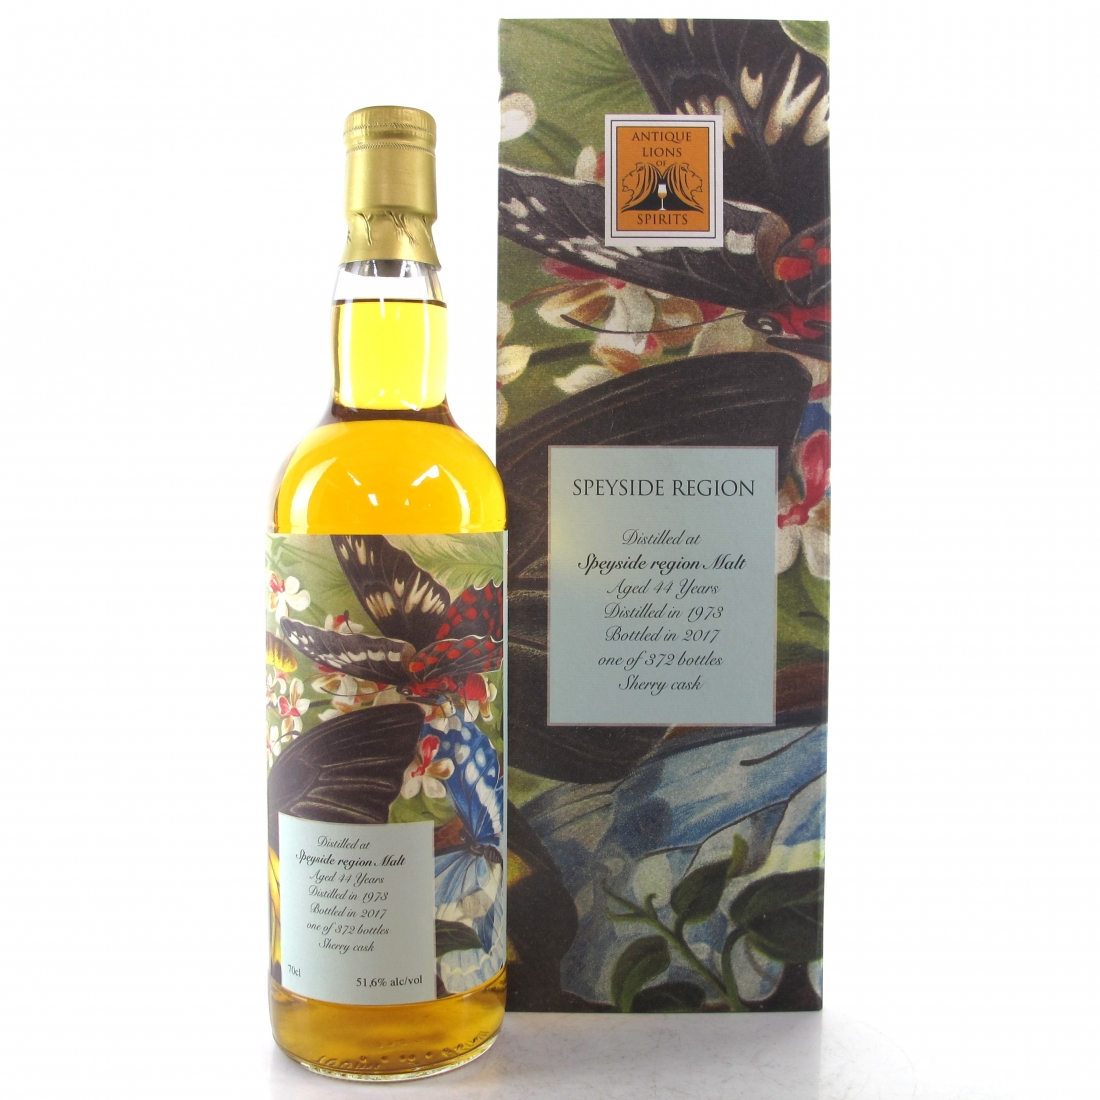 Speyside Single Malt 1973 Antique Lions 44 Year Old / The Butterflies